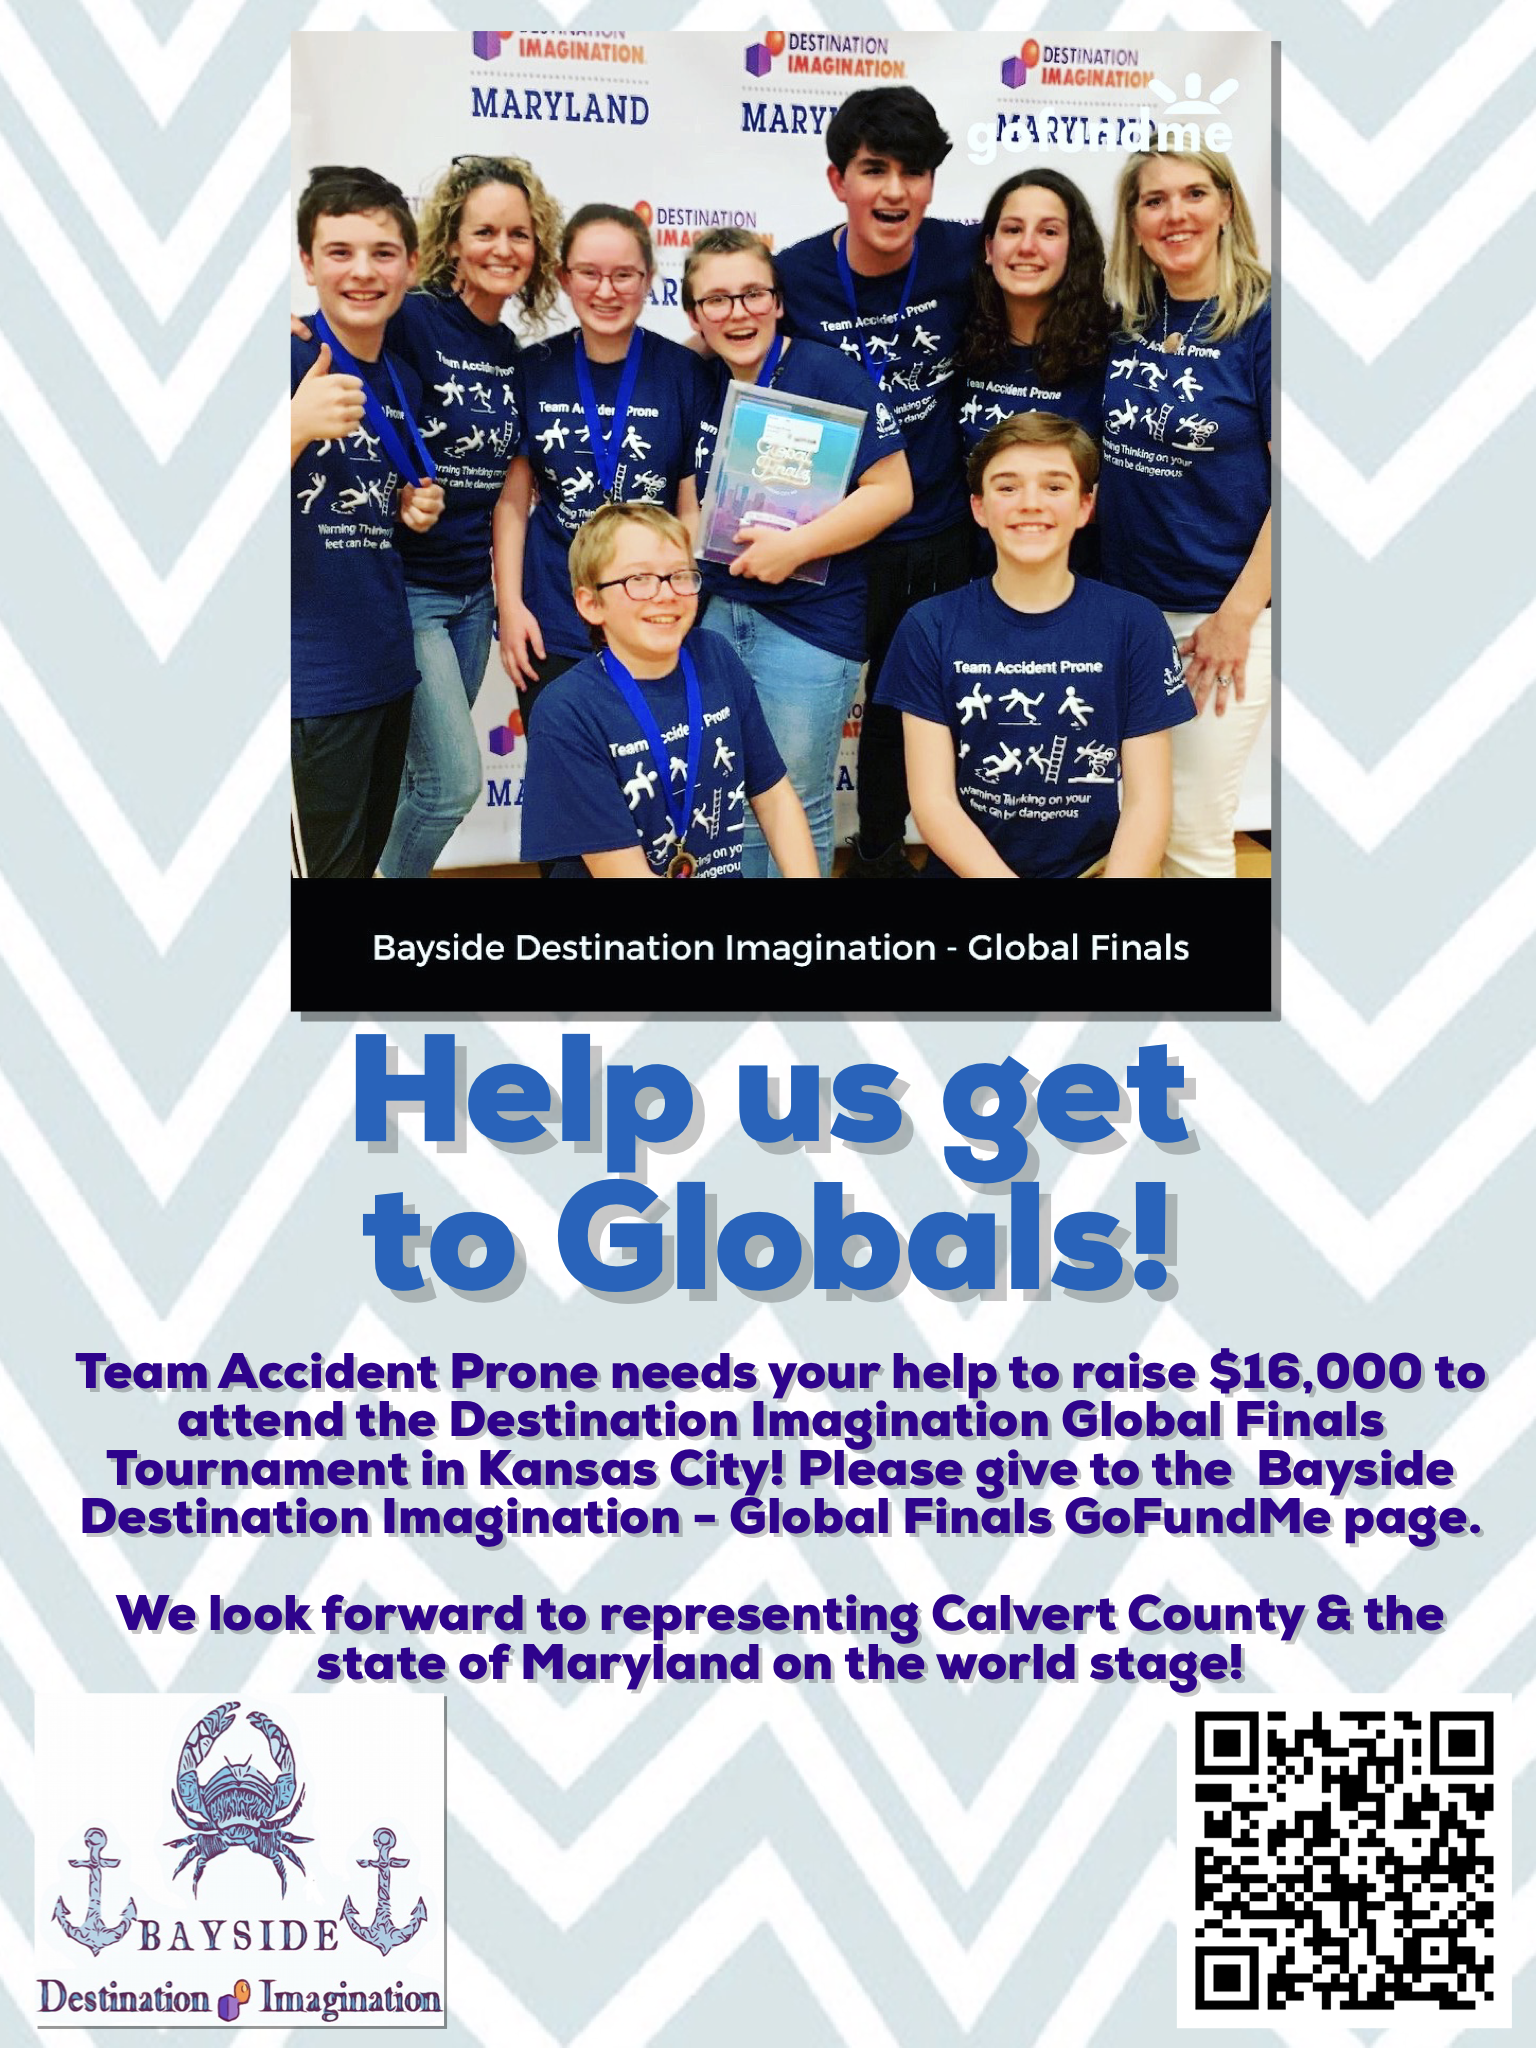 Help these talented kids represent Calvert County on a Global Stage! - 100% proceeds of sales will be donated to Team Accident Prone to achieve IMPROV SUCCESS!Find out more about about BAYSIDE DESTINATION IMAGINATIONAll orders will be shipped via USPS Priority Mail.